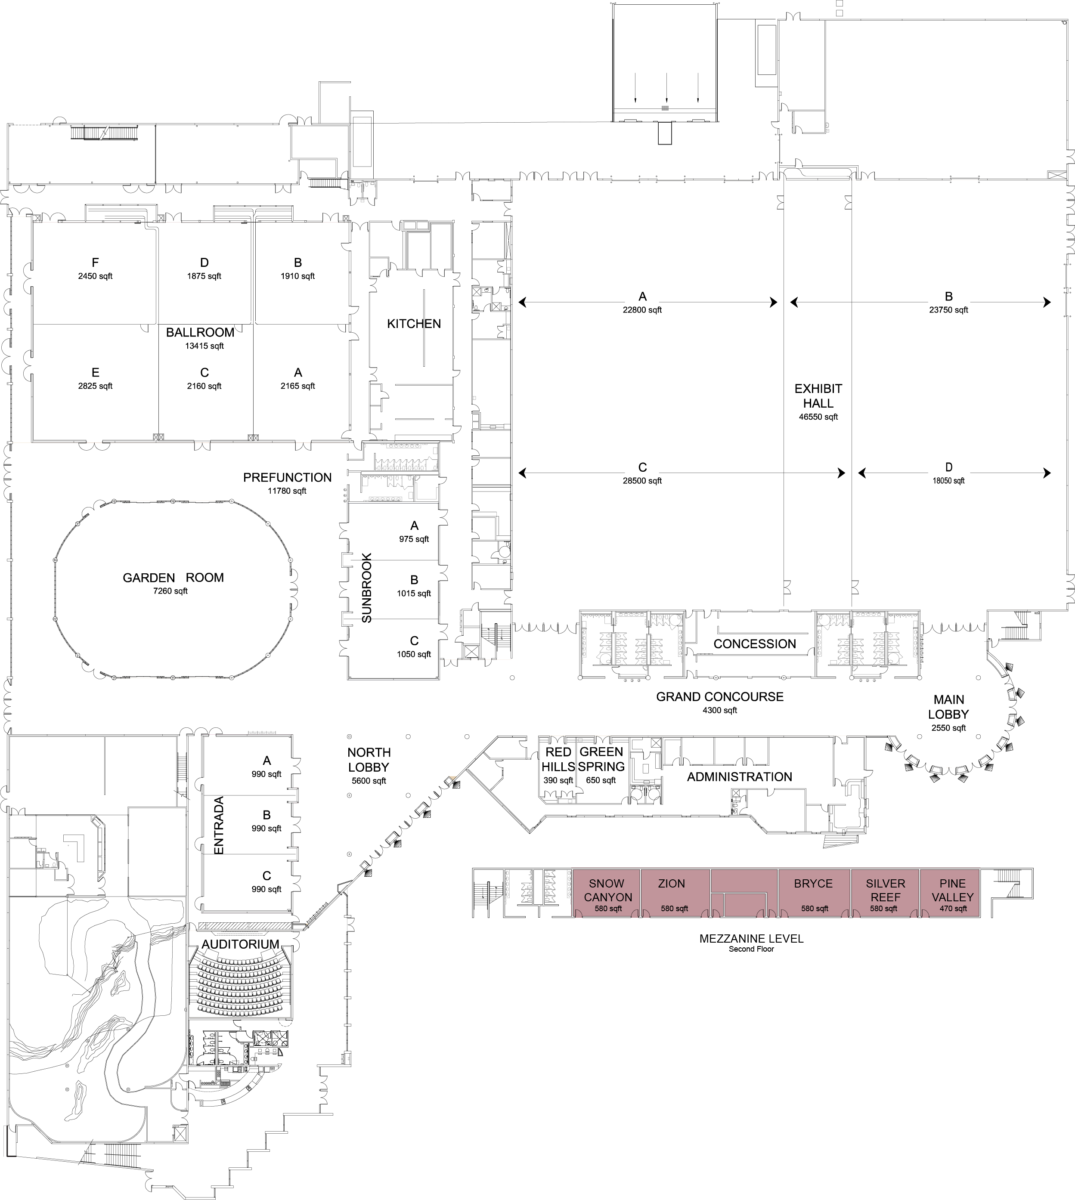 Floorplan of convention center with mezzanine highlighted